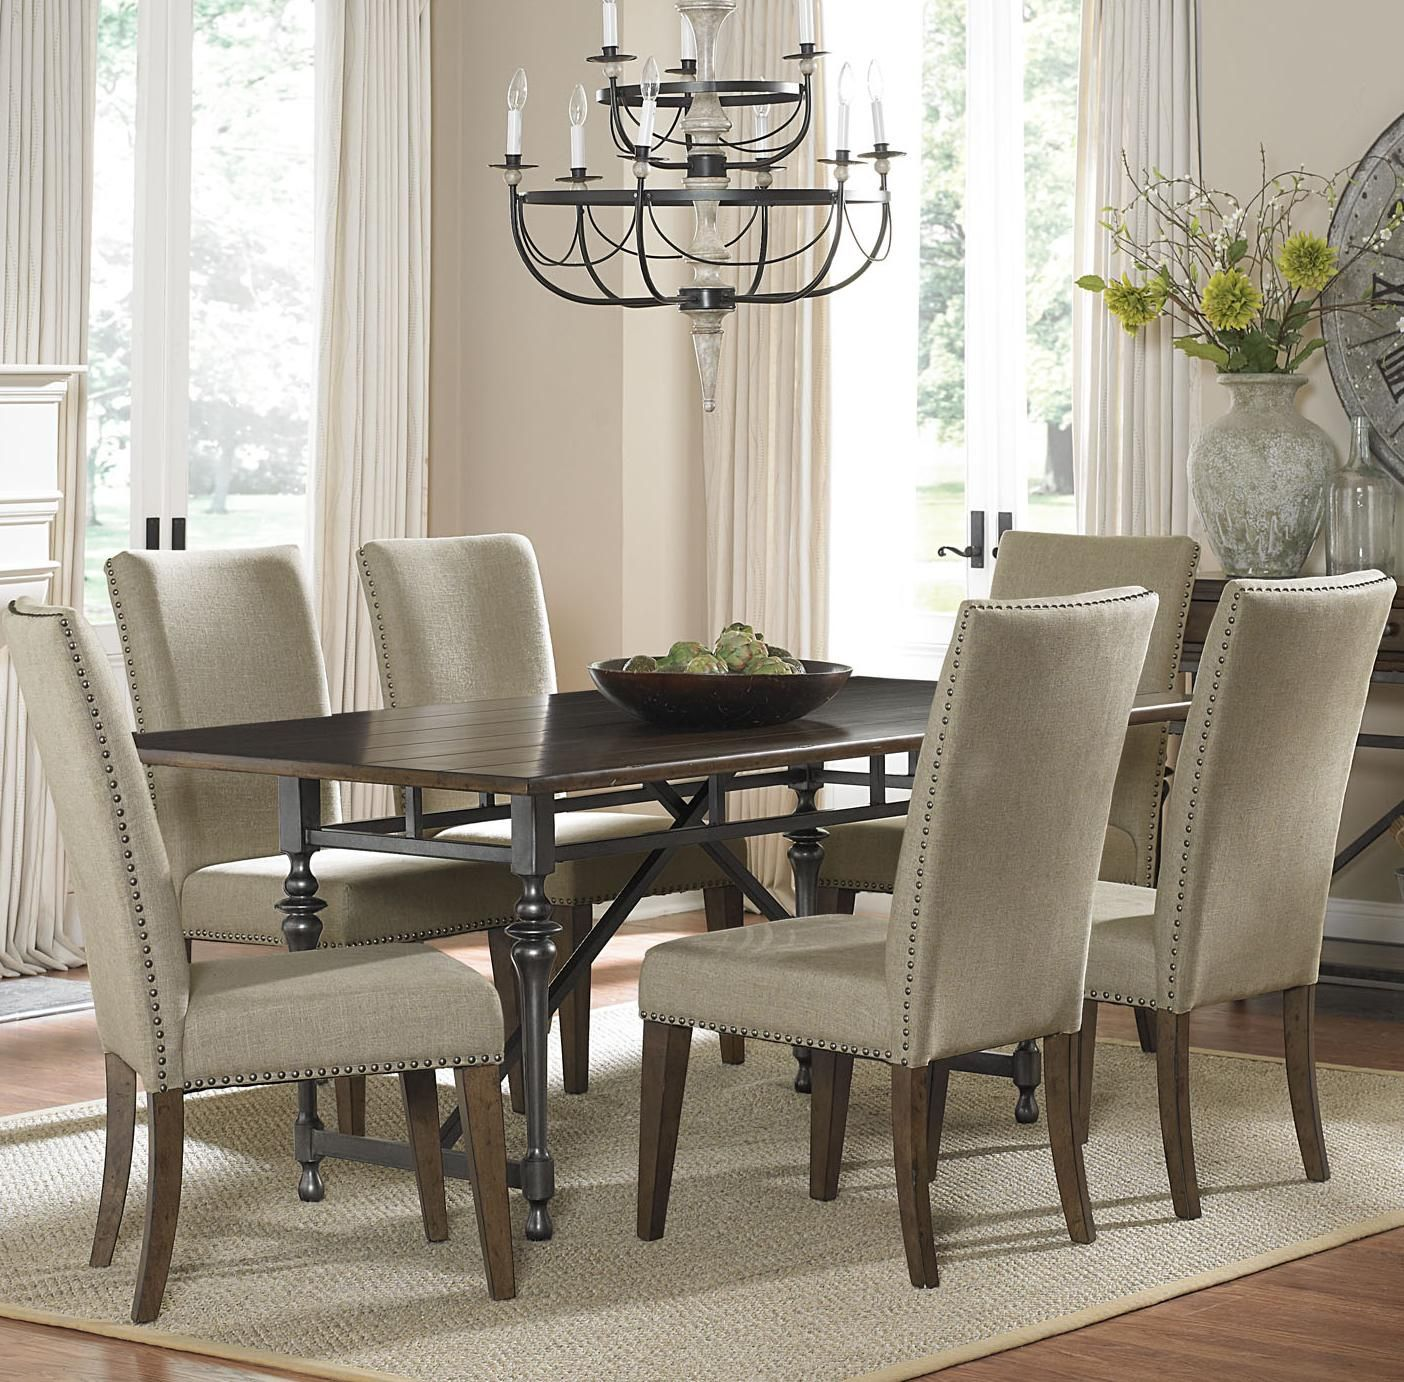 Ivy Park 7 Piece Dining Table And Upholstered Chair Set By